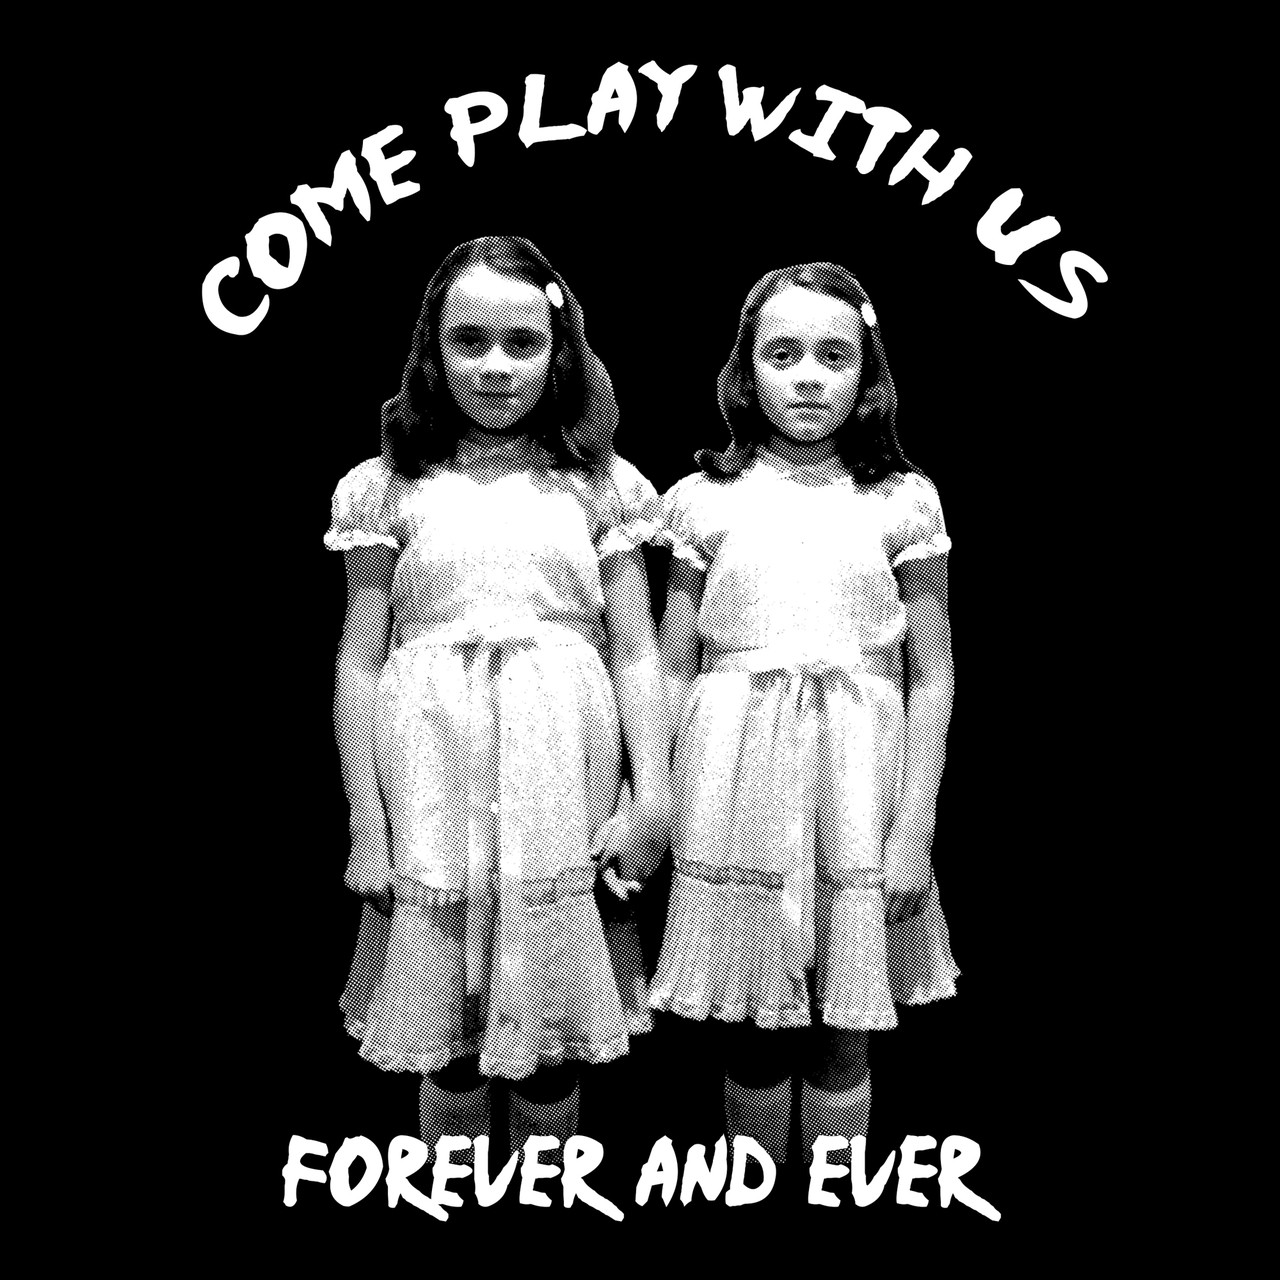 Come Play With Us: The Shining Twins T Shirt Come Play With Us Stanley